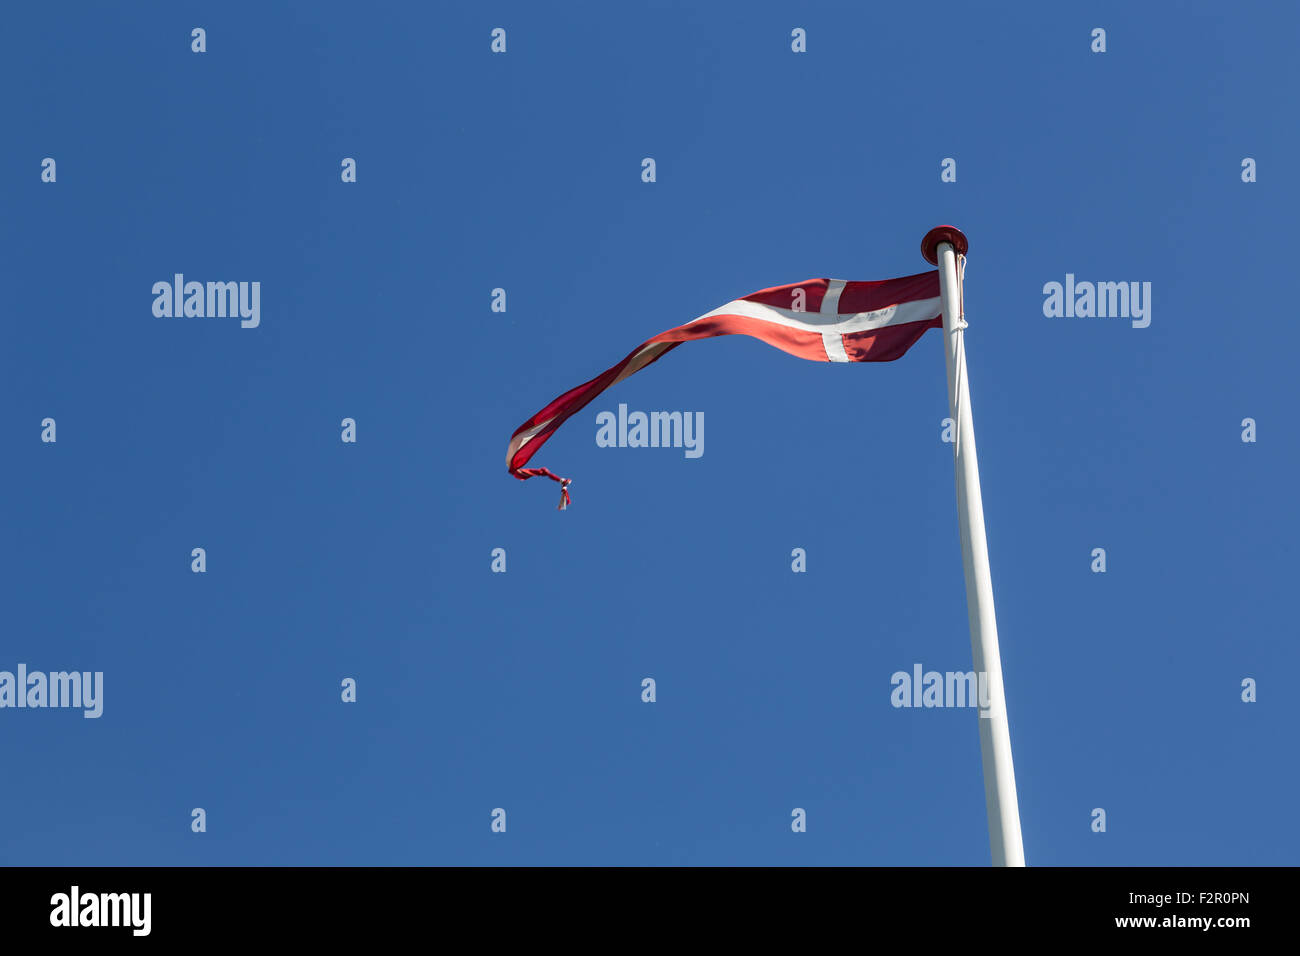 Photograph of a danish vimpel, a long and thin flag. - Stock Image